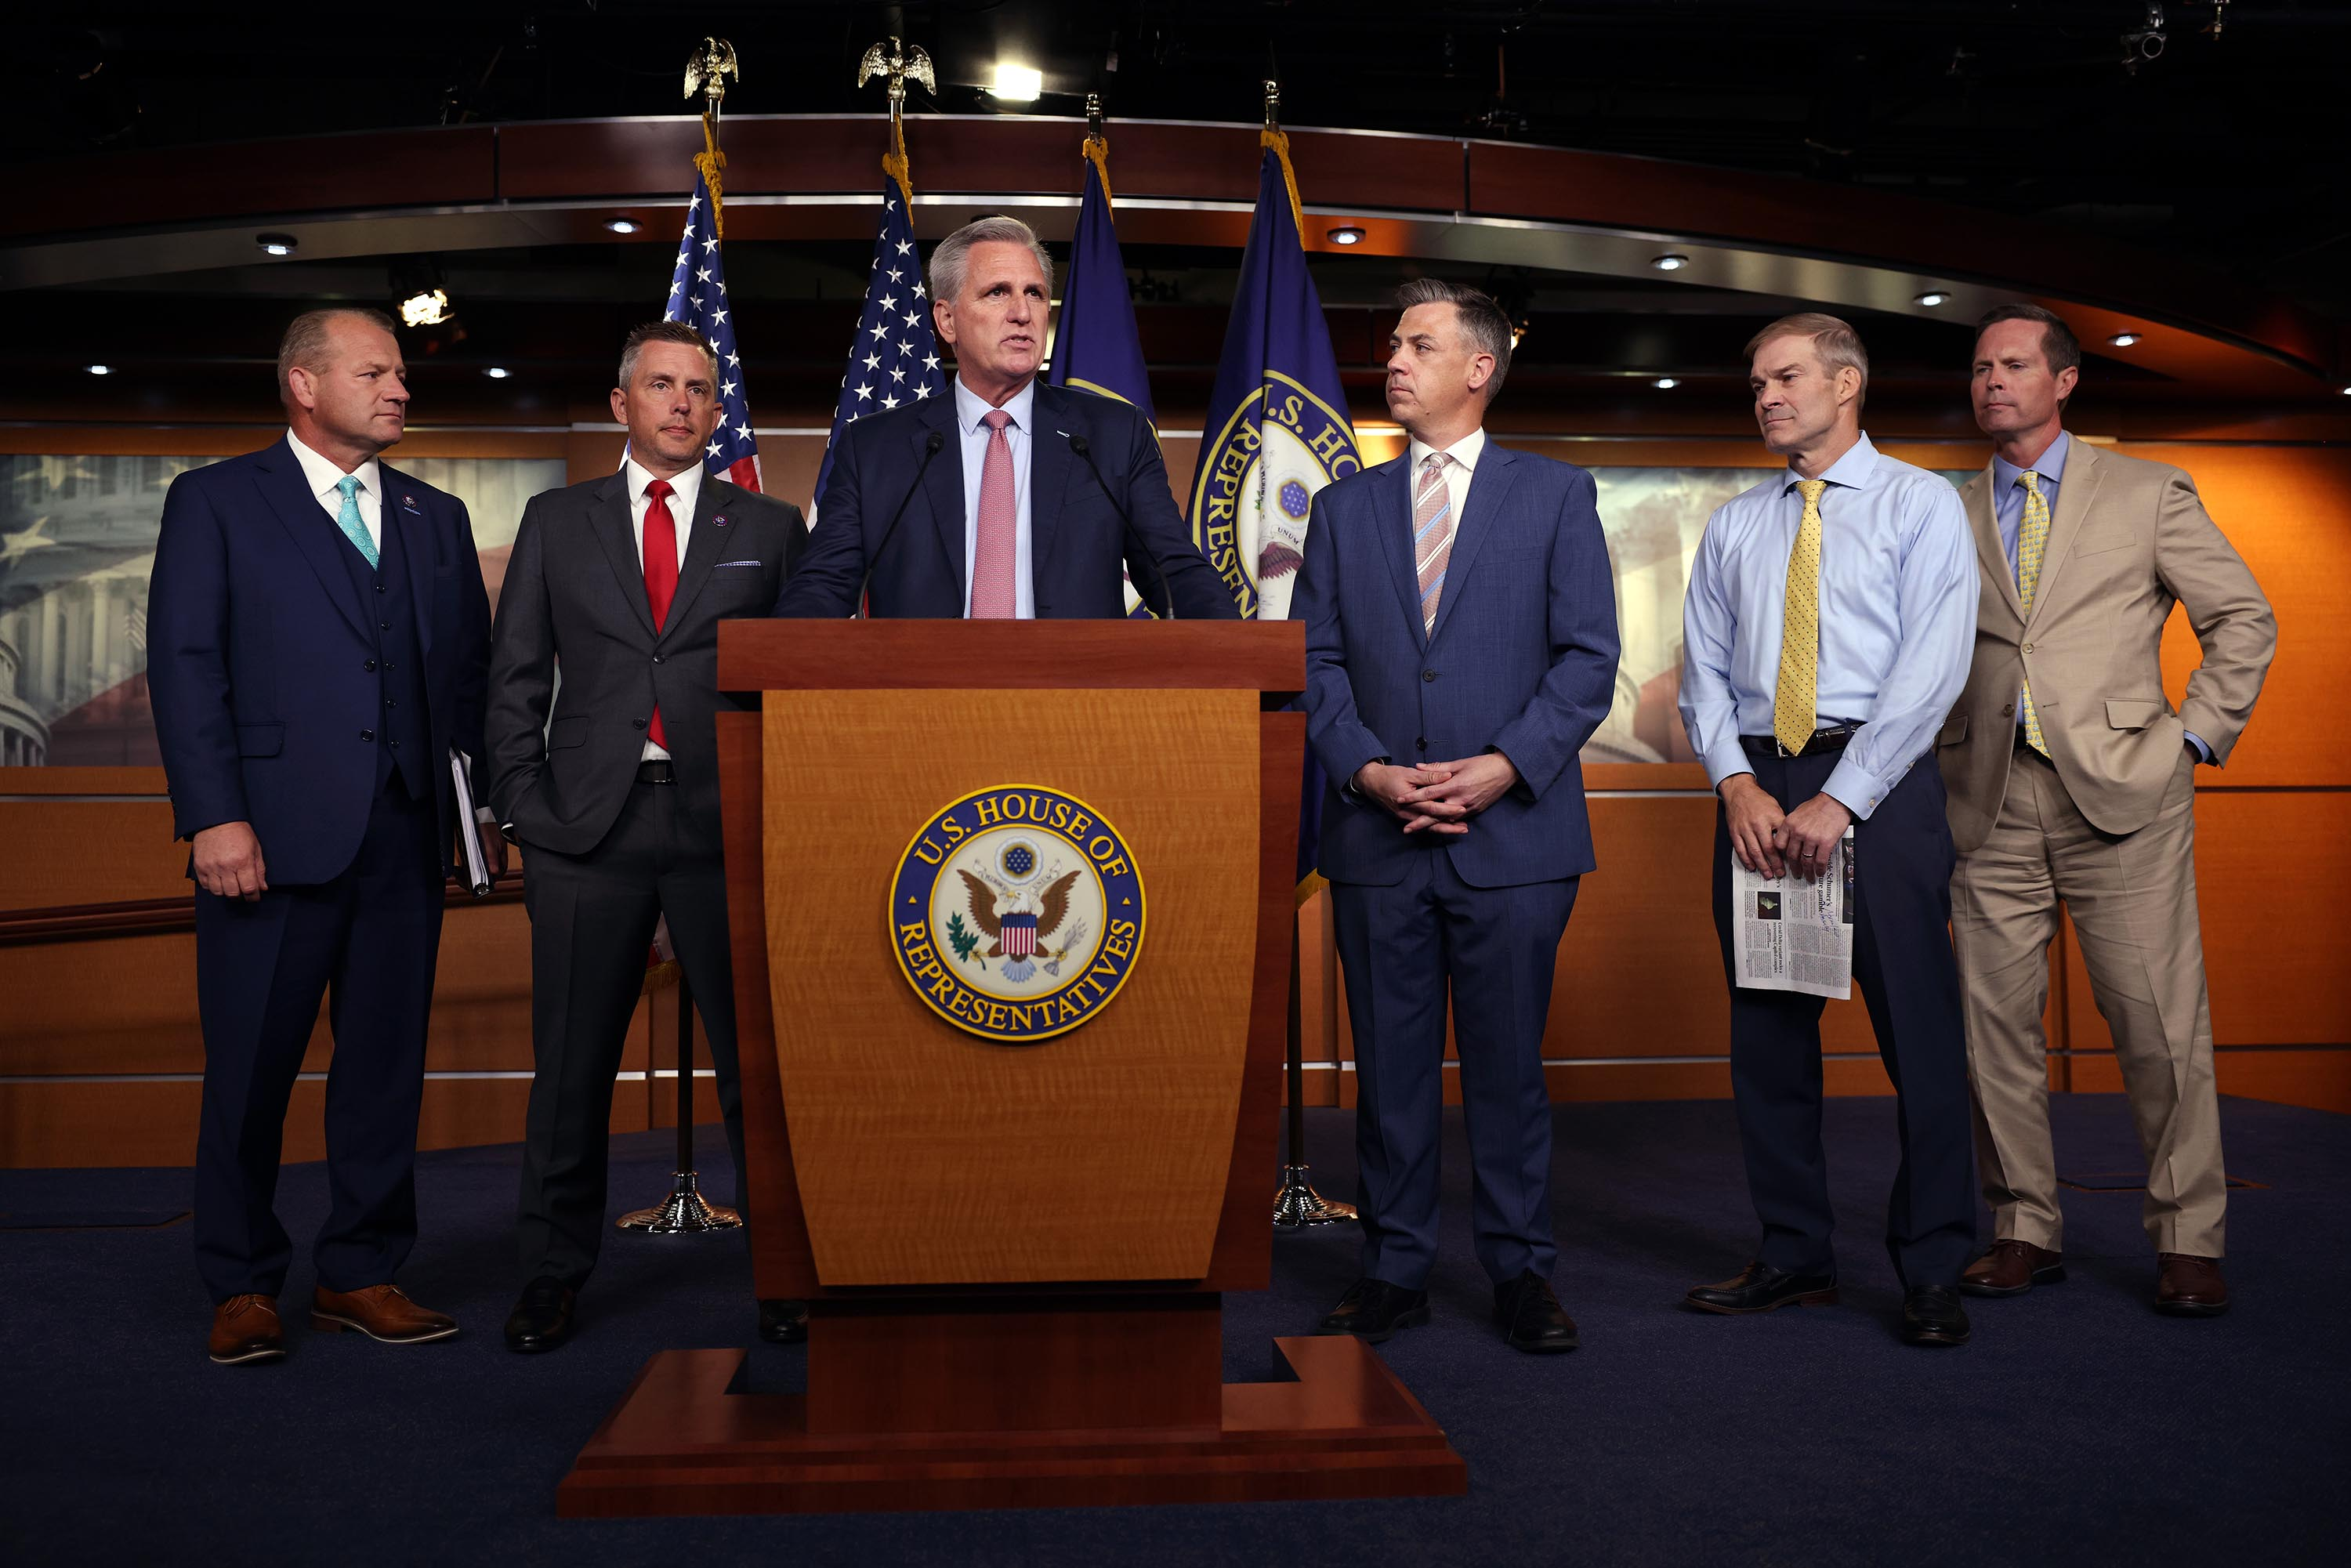 House Minority Leader Kevin McCarthy speaks at a news conference on House Speaker Nancy Pelosi's decision to reject two of McCarthy's selected members from serving on the committee investigating the January 6th riots on July 21, 2021 in Washington, DC.